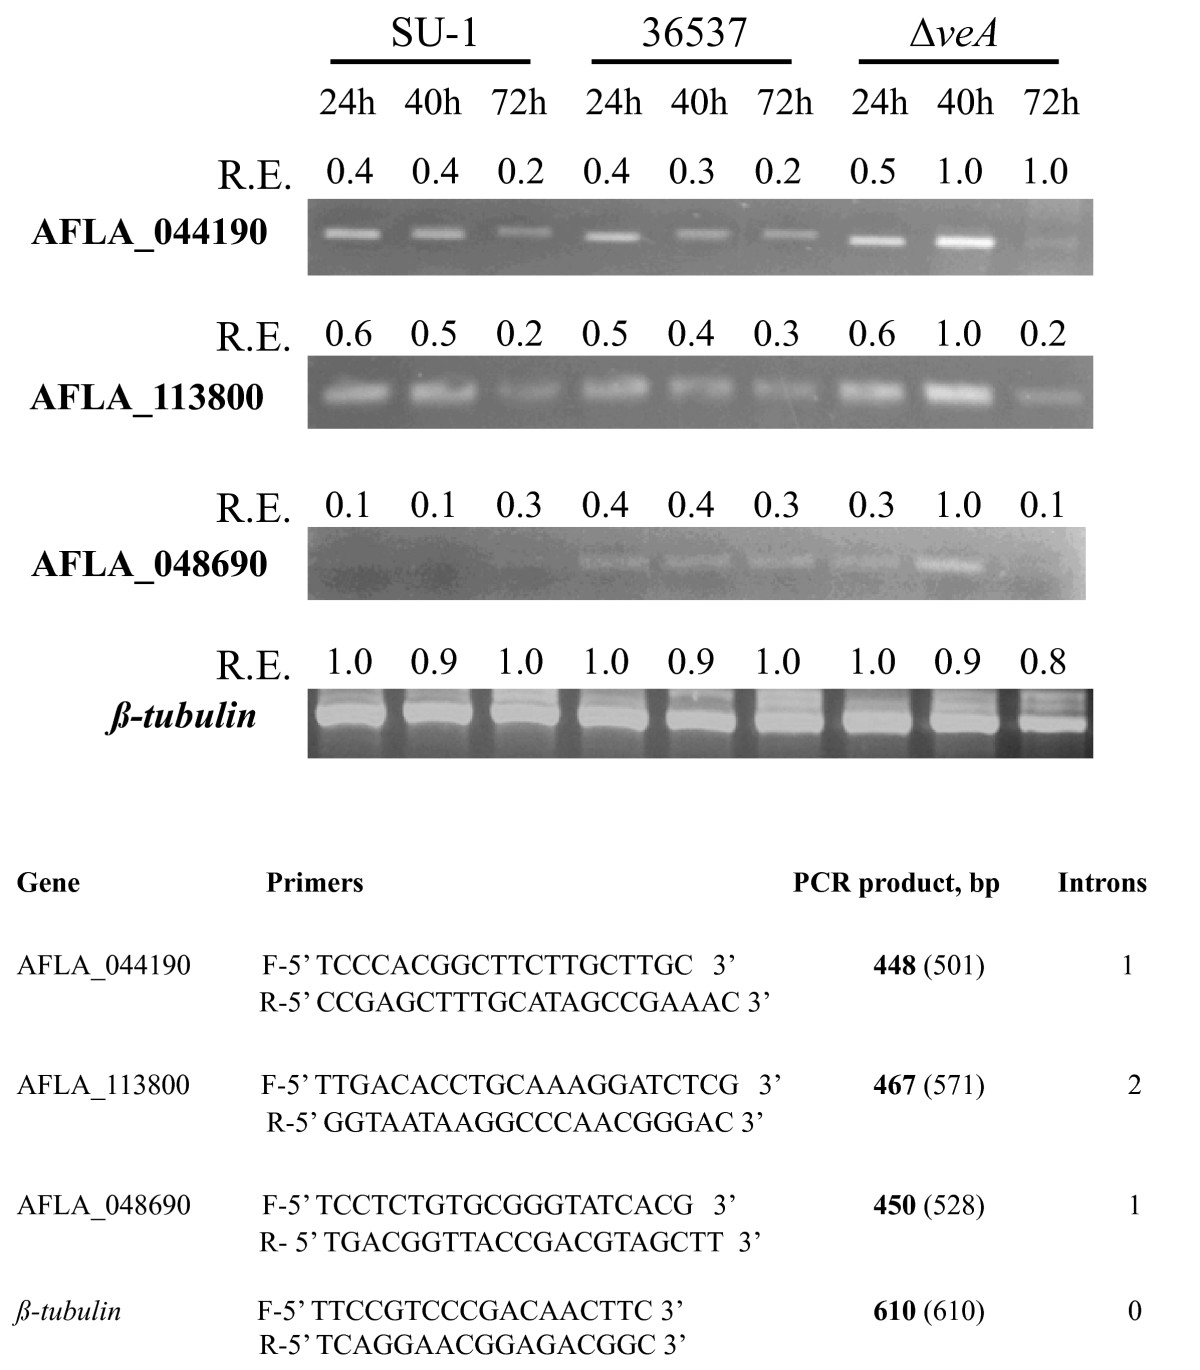 https://static-content.springer.com/image/art%3A10.1186%2F1471-2091-11-33/MediaObjects/12858_2010_Article_294_Fig6_HTML.jpg